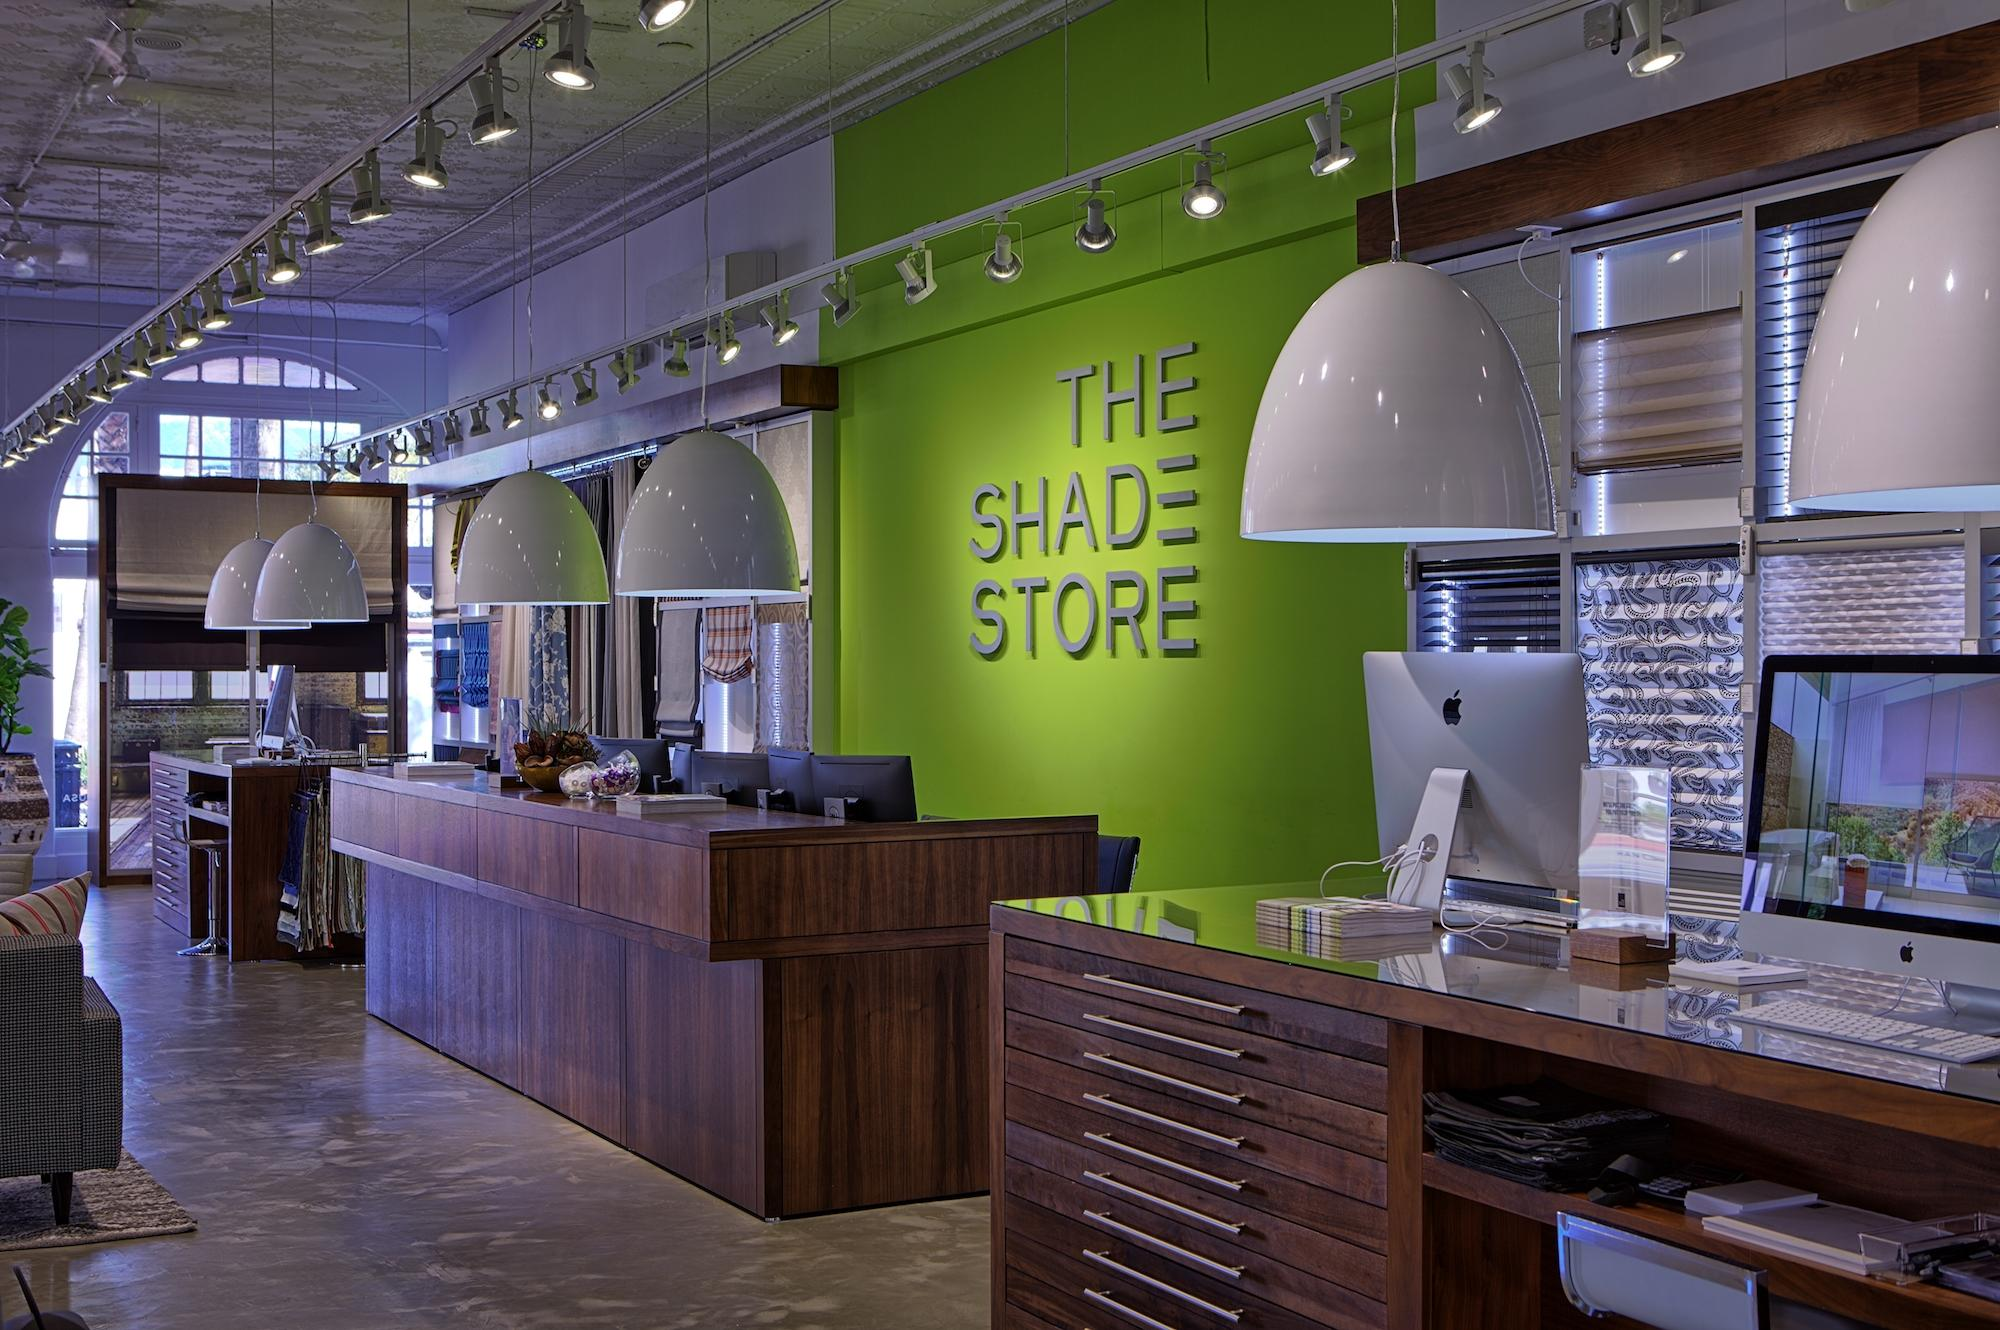 The Shade Store image 5